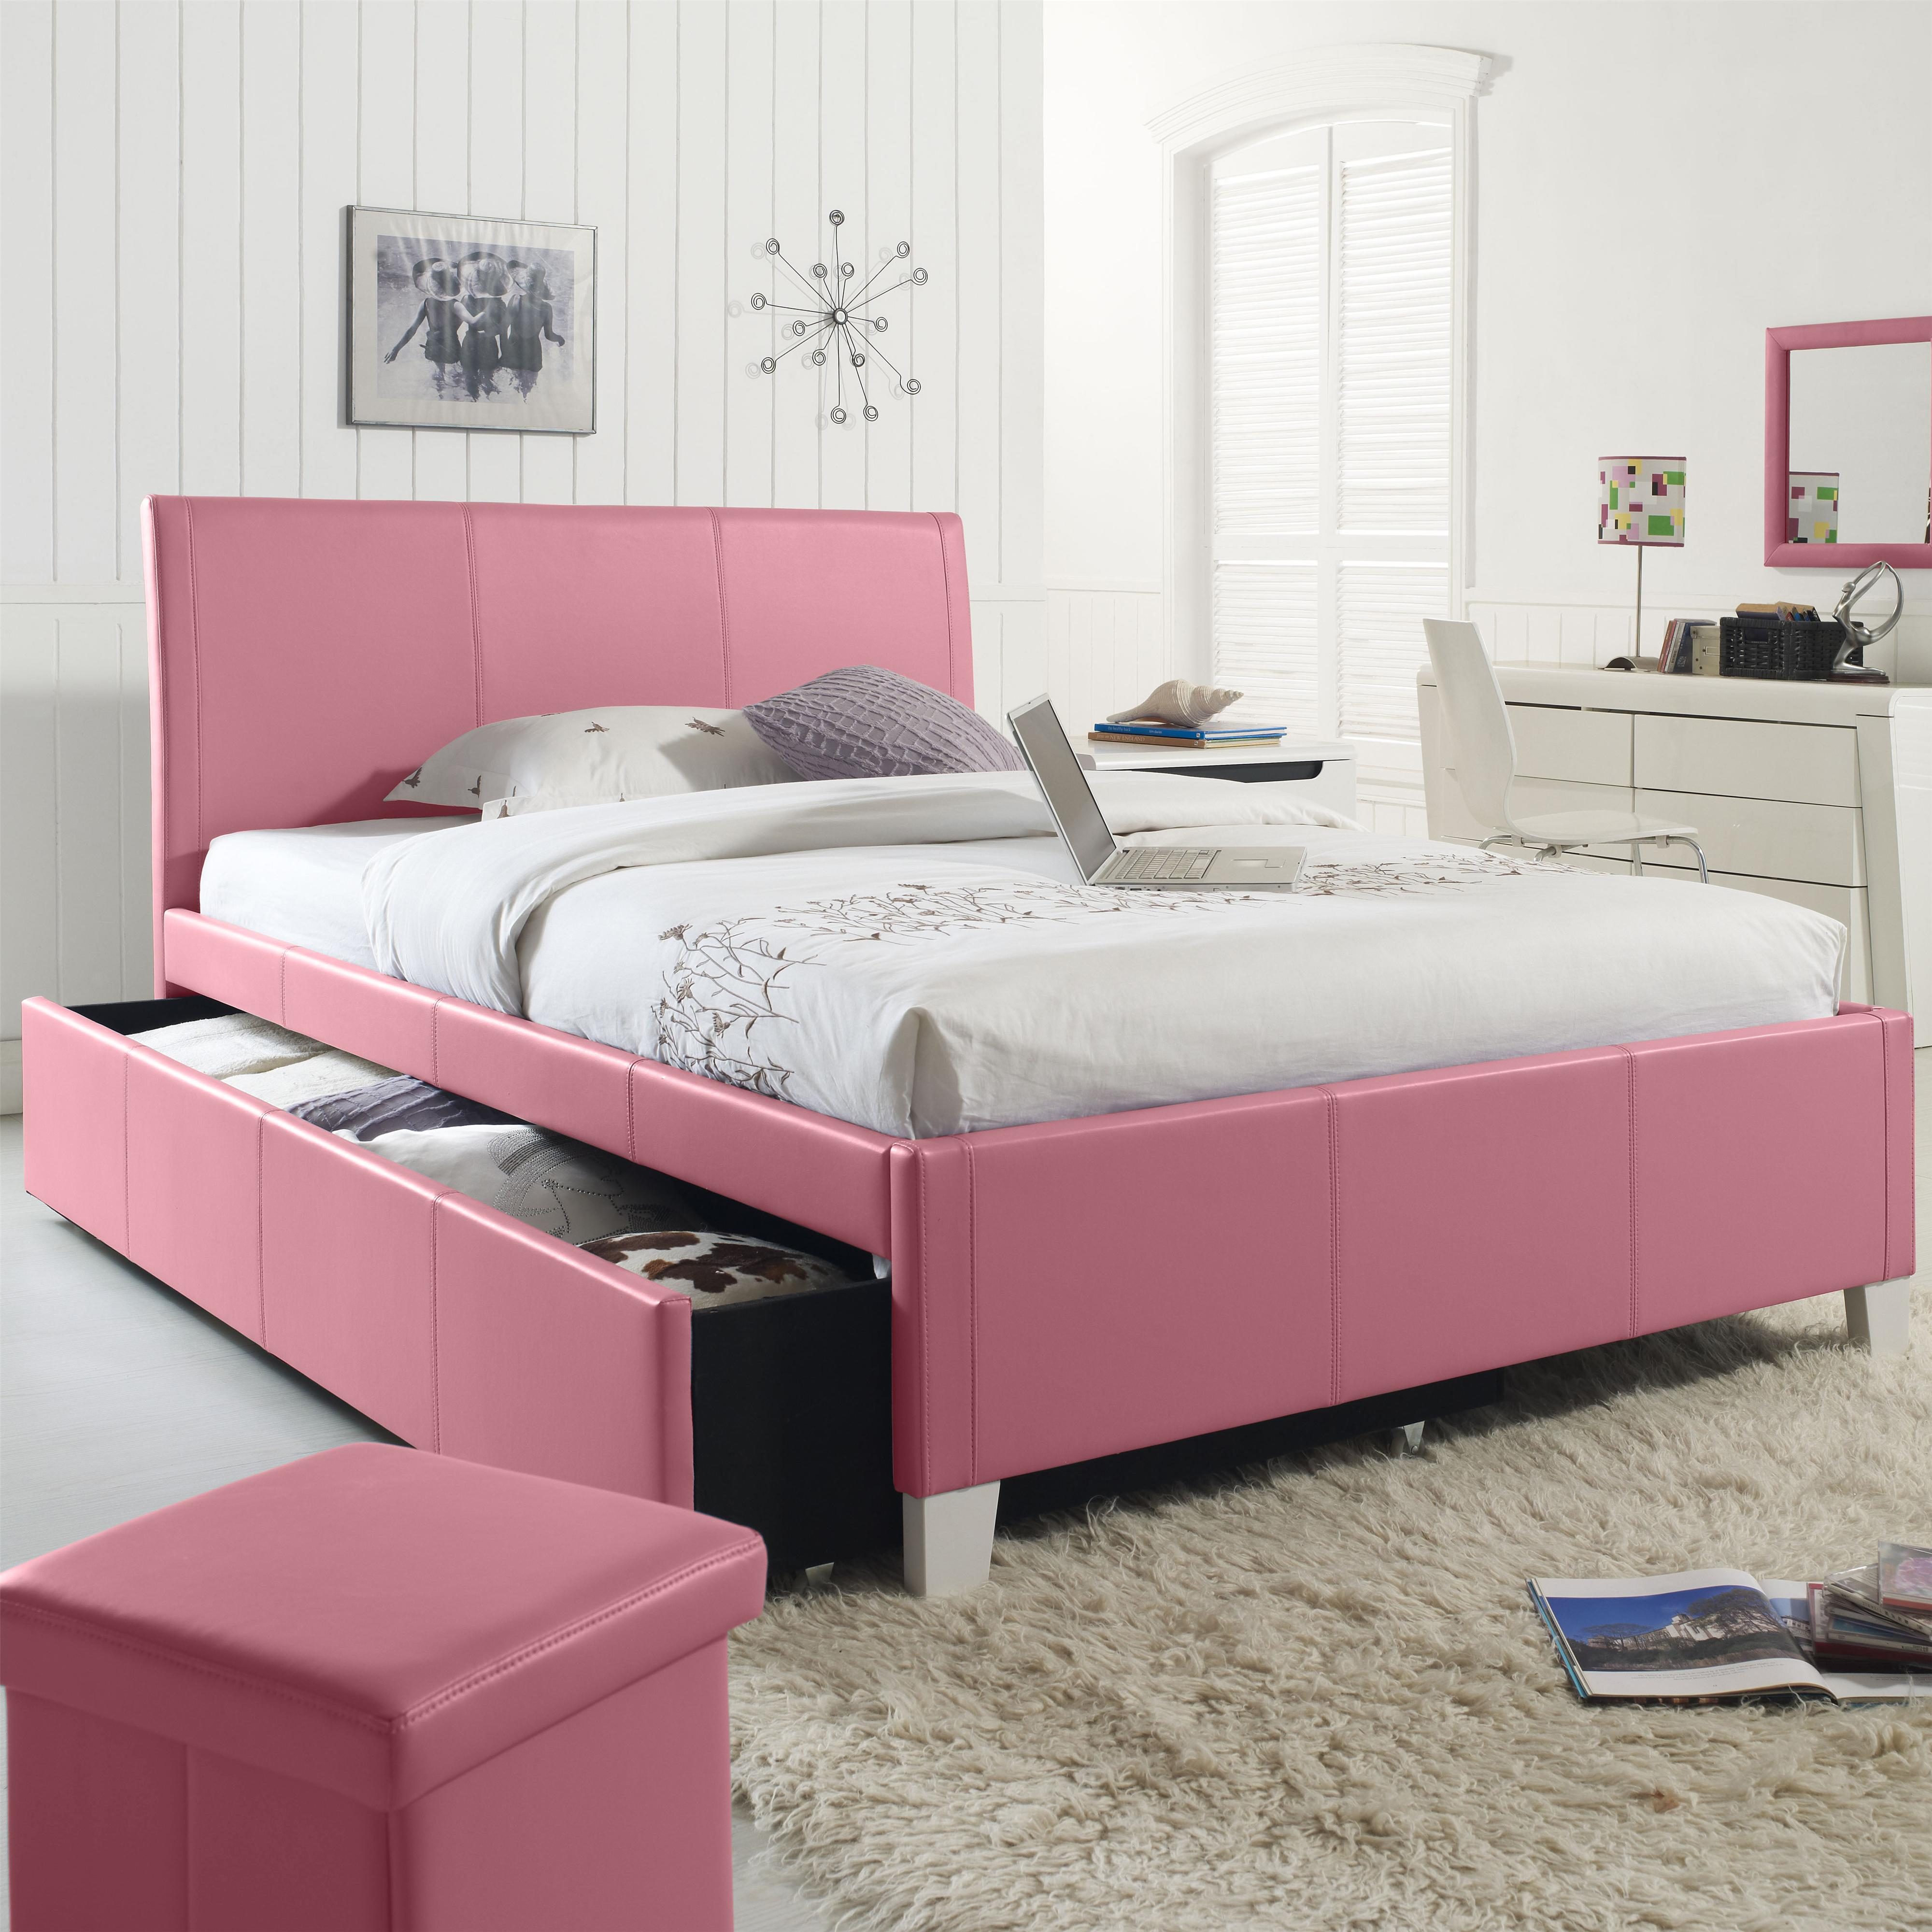 stained attractive upholstered tablecloths including by square headboards trends headboard fabulous combined bolt the bedroom white king sideboard fabric painted also pink ideas cheap diy well as size for contemporary pictures